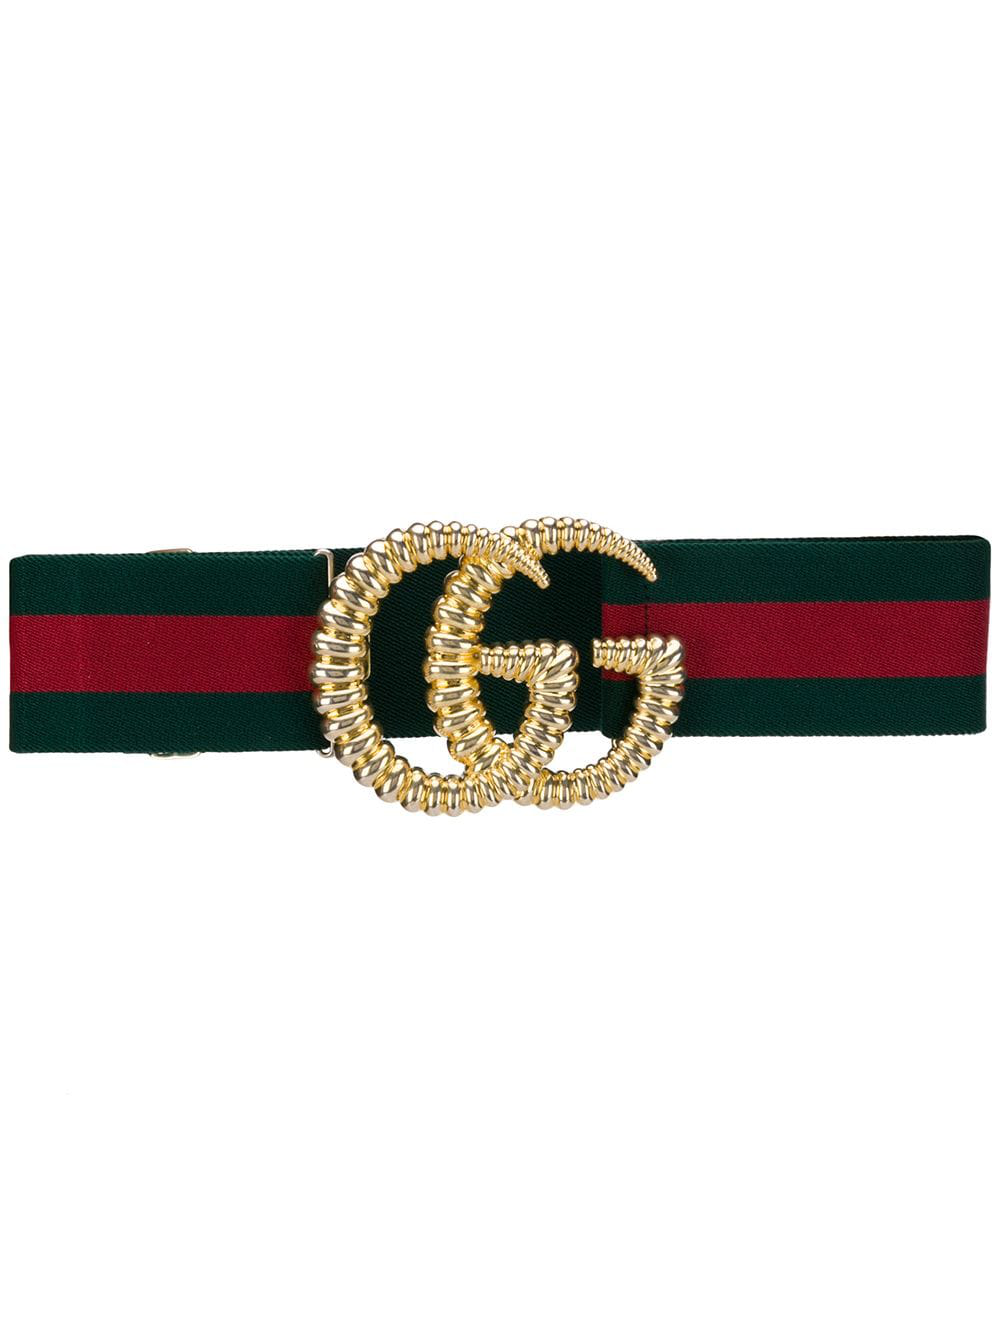 Gg Other Belts/ Vip Men's Bags